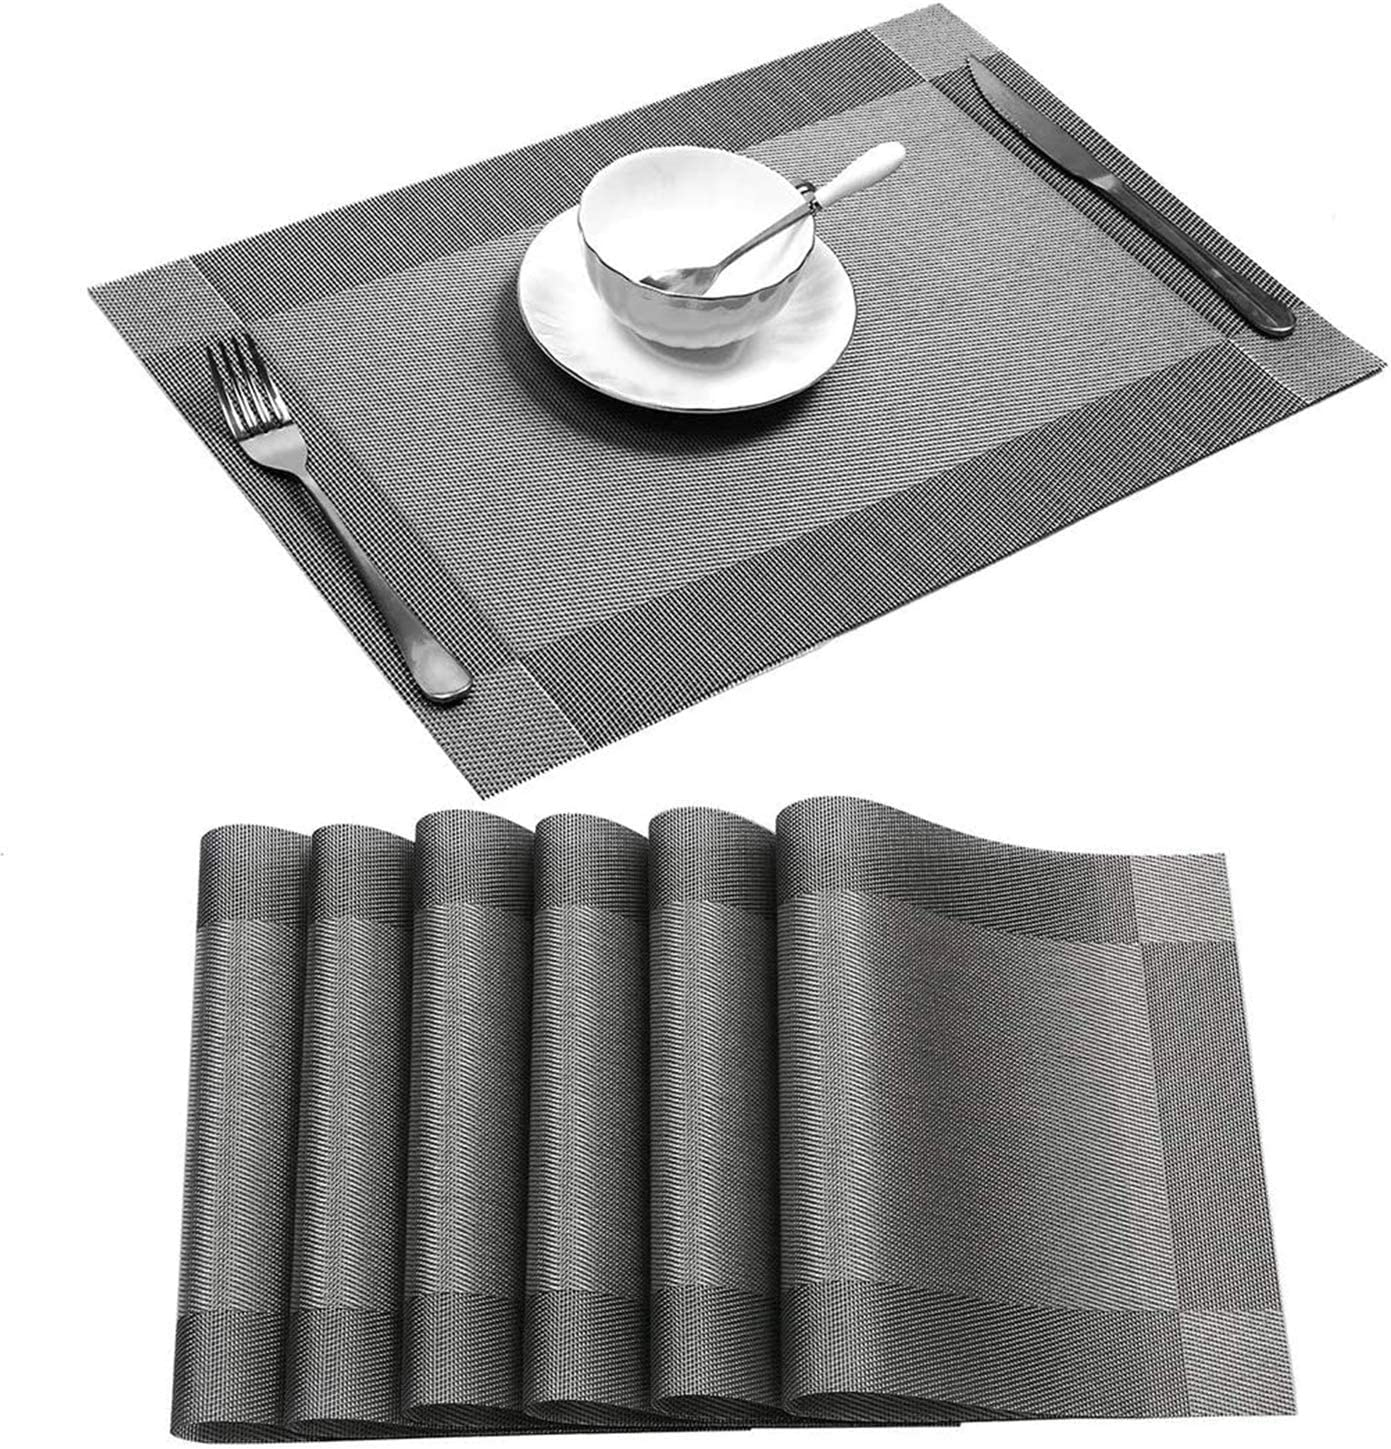 Digead Place Mats, Placemats for Dining Table Set of 6, Heat-Resistant Non-Slip Placemats Washable PVC Table Mats, DIY Size for Various Plates